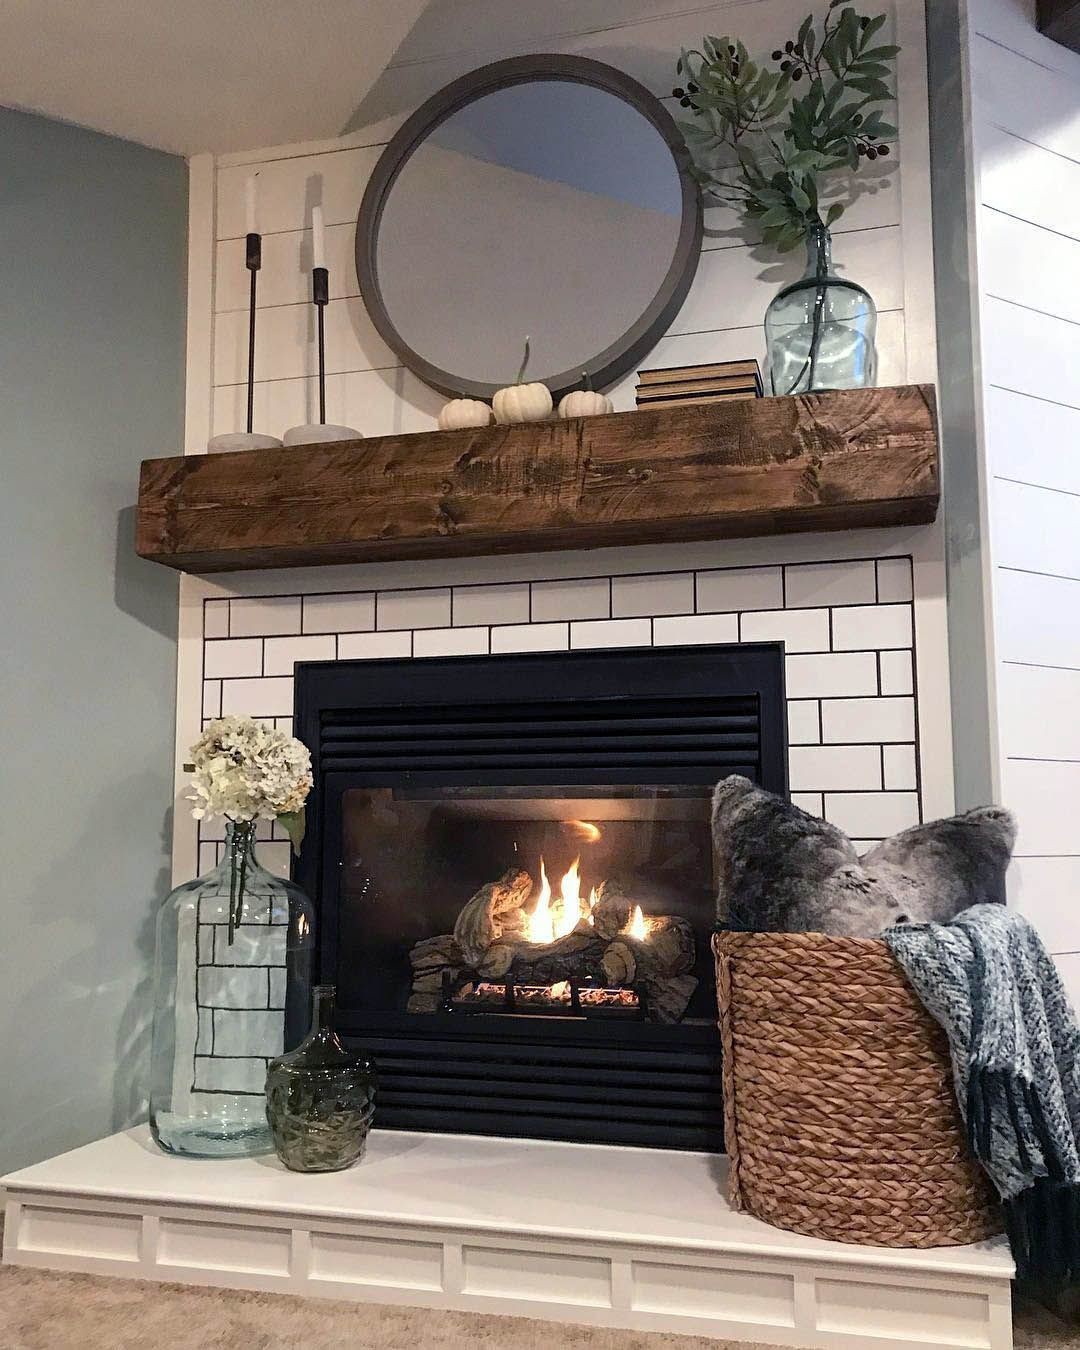 First Rate Cool Fireplace Mantels On This Favorite Site